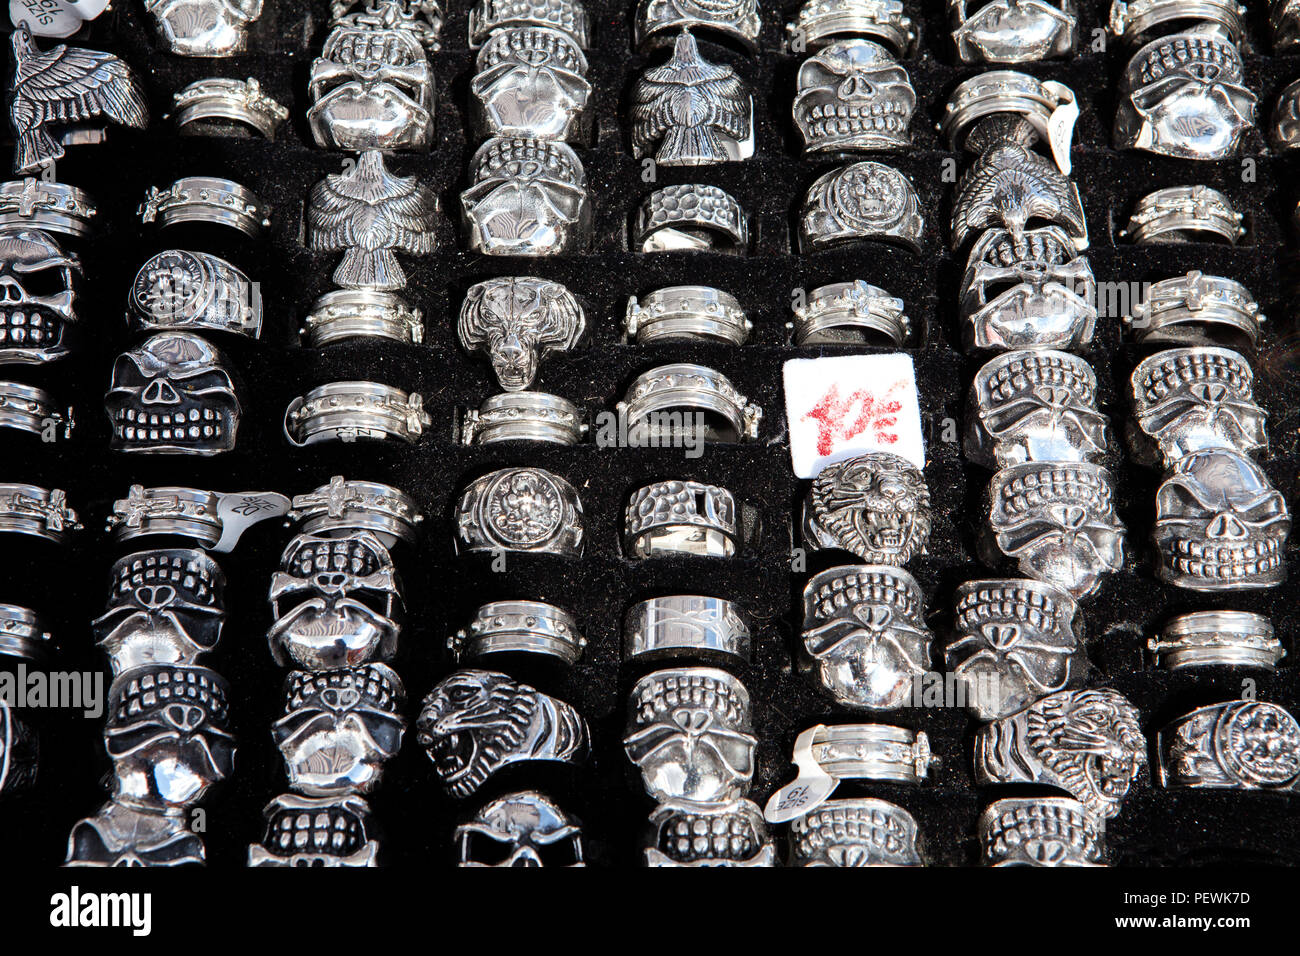 Shop for gothic rings, Germany, Europe - Stock Image